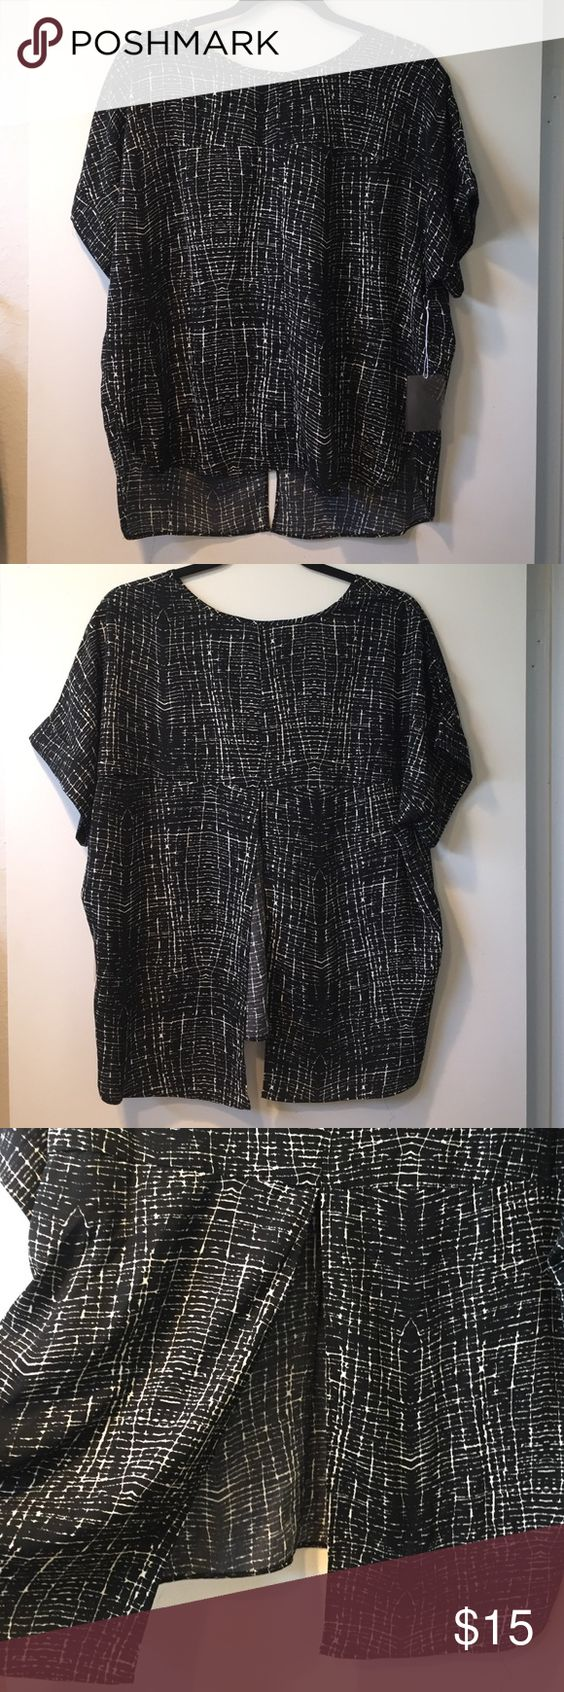 Boxy Blouse Brand new with tags. Half open back slit. Fits like M/L Forever 21 Tops Blouses